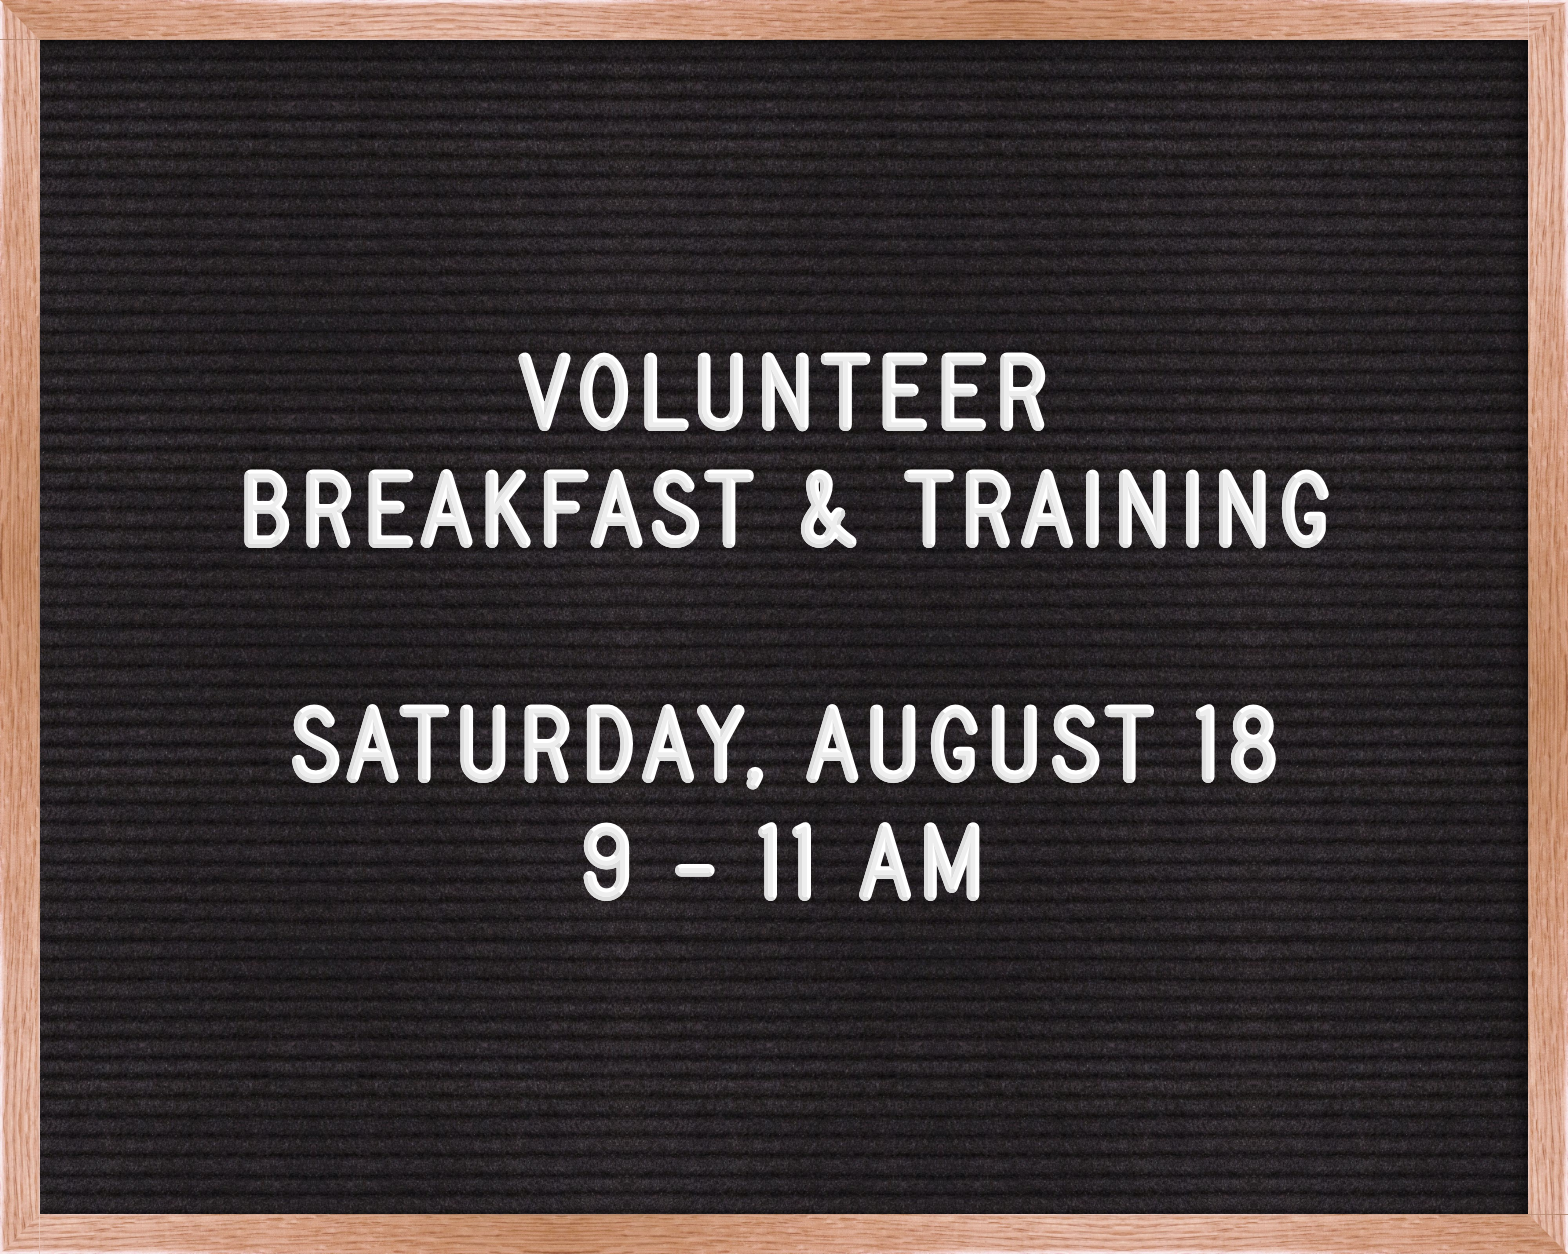 Save the Date!  We are excited to offer an appreciation breakfast for our amazing volunteers that make every Sunday possible. We are  always  in need of new help too! There are plenty of opportunities to serve where you feel YOU fit!  Over the next few weeks, during announcements, we'll hear from the different leaders of each ministry. Look for Volunteer cards at church on Sunday. No commitment is needed just for filling out a card to express your interest! Check anything you are interested in and then join us for breakfast and learn about those ministries that help Missio run!